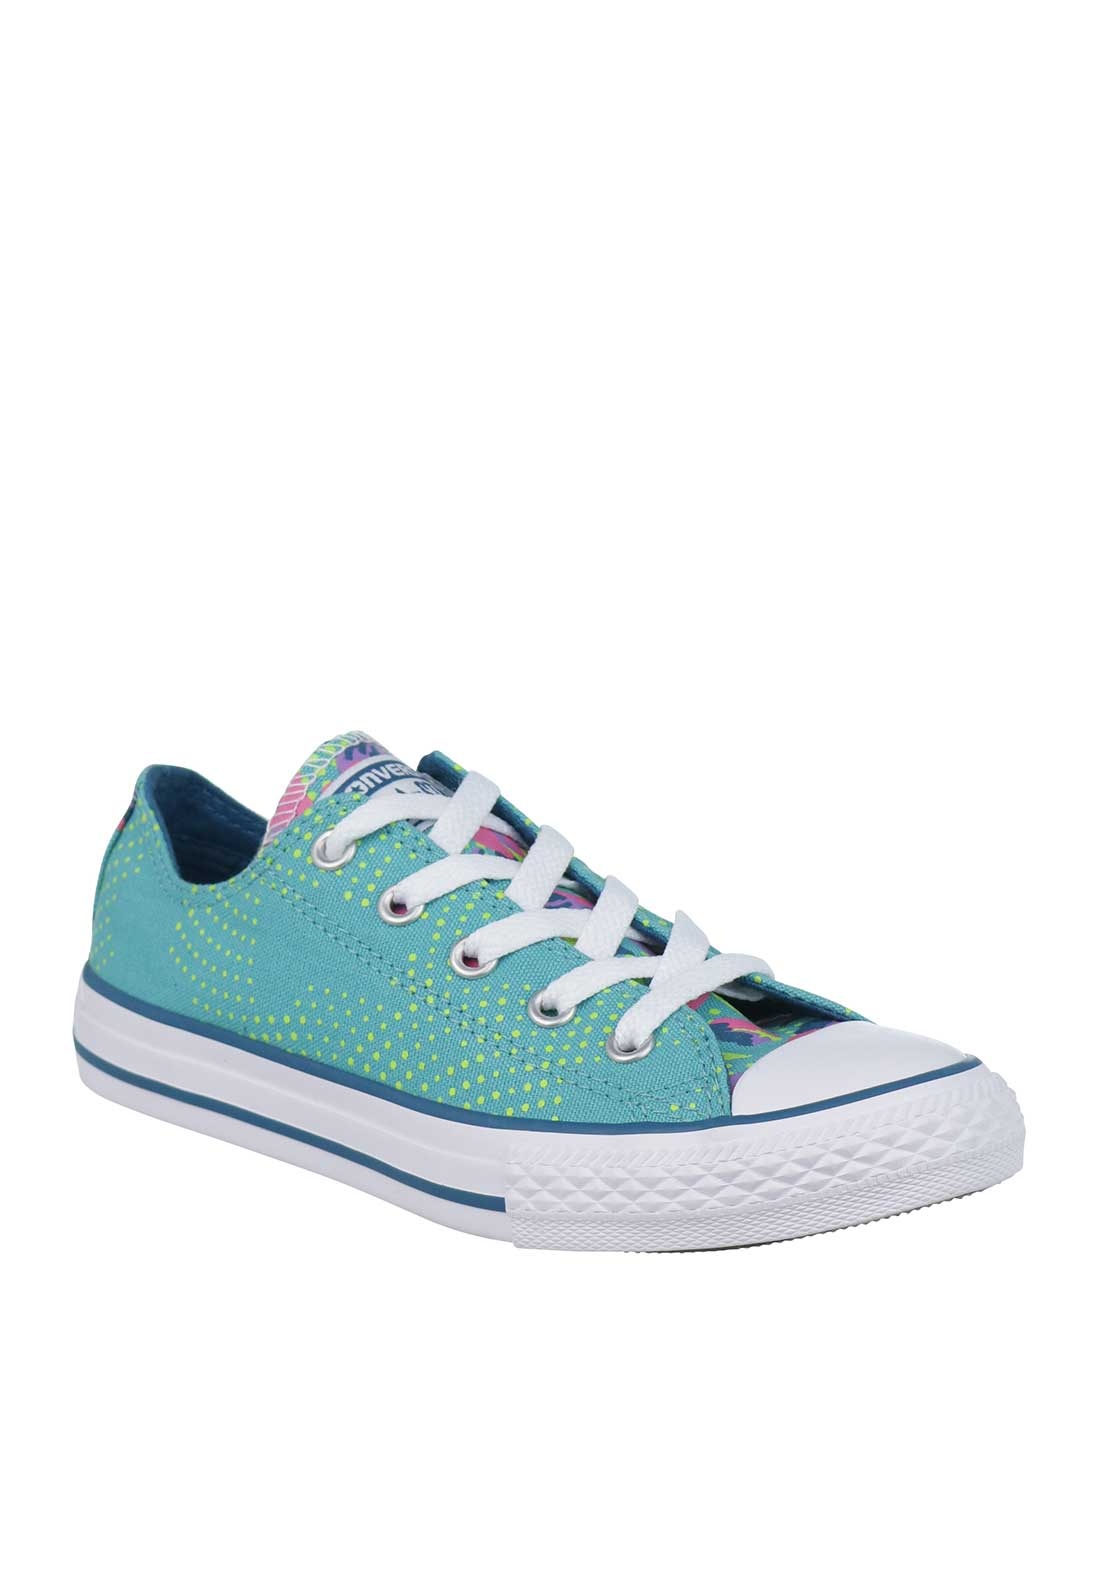 Converse Girls All Star Printed Trainers, Aqua